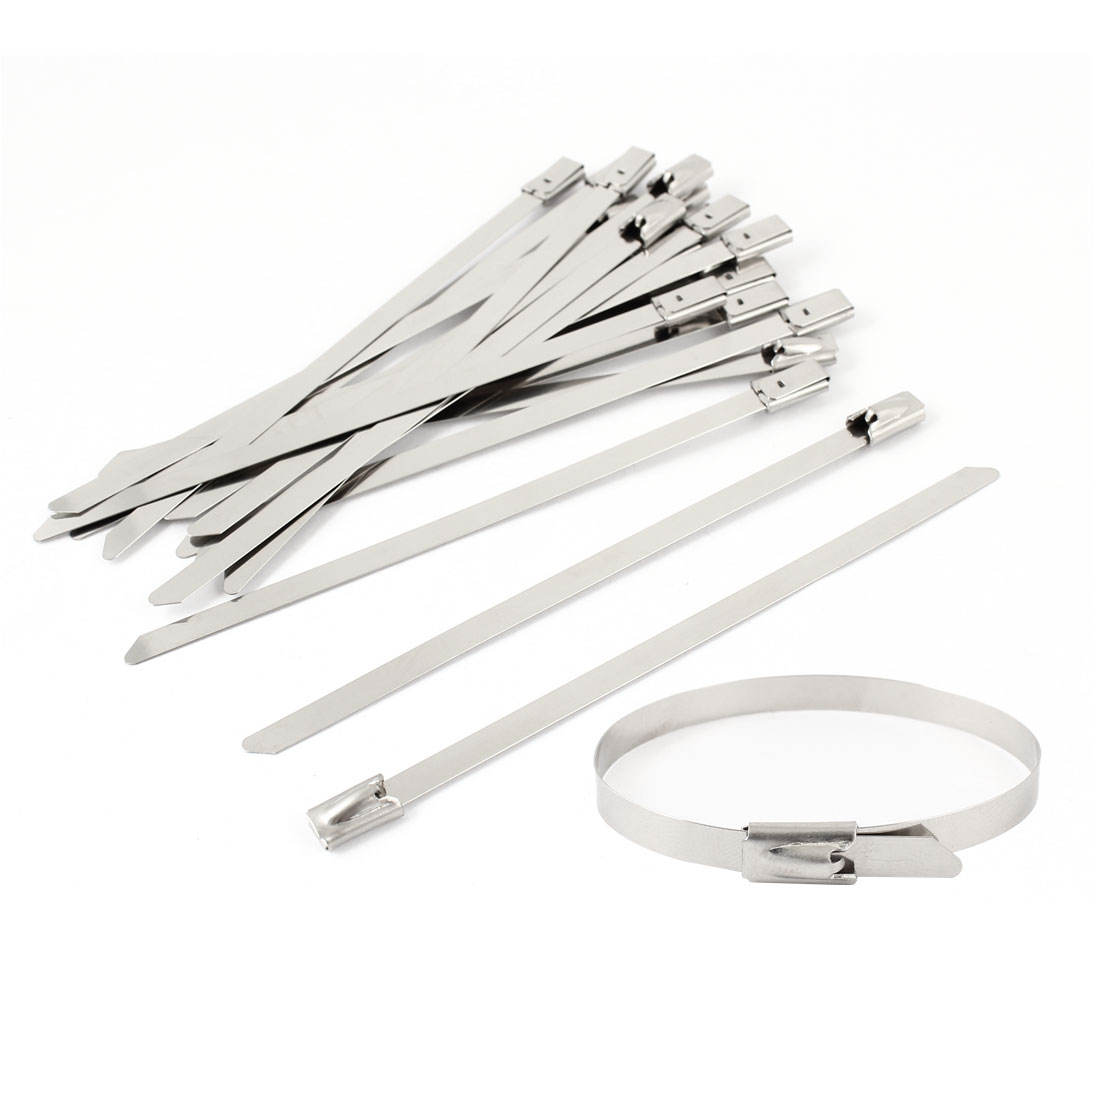 100mm Long 4.6mm Wide Stainless Steel Sprayed Cable Tie 20PCS